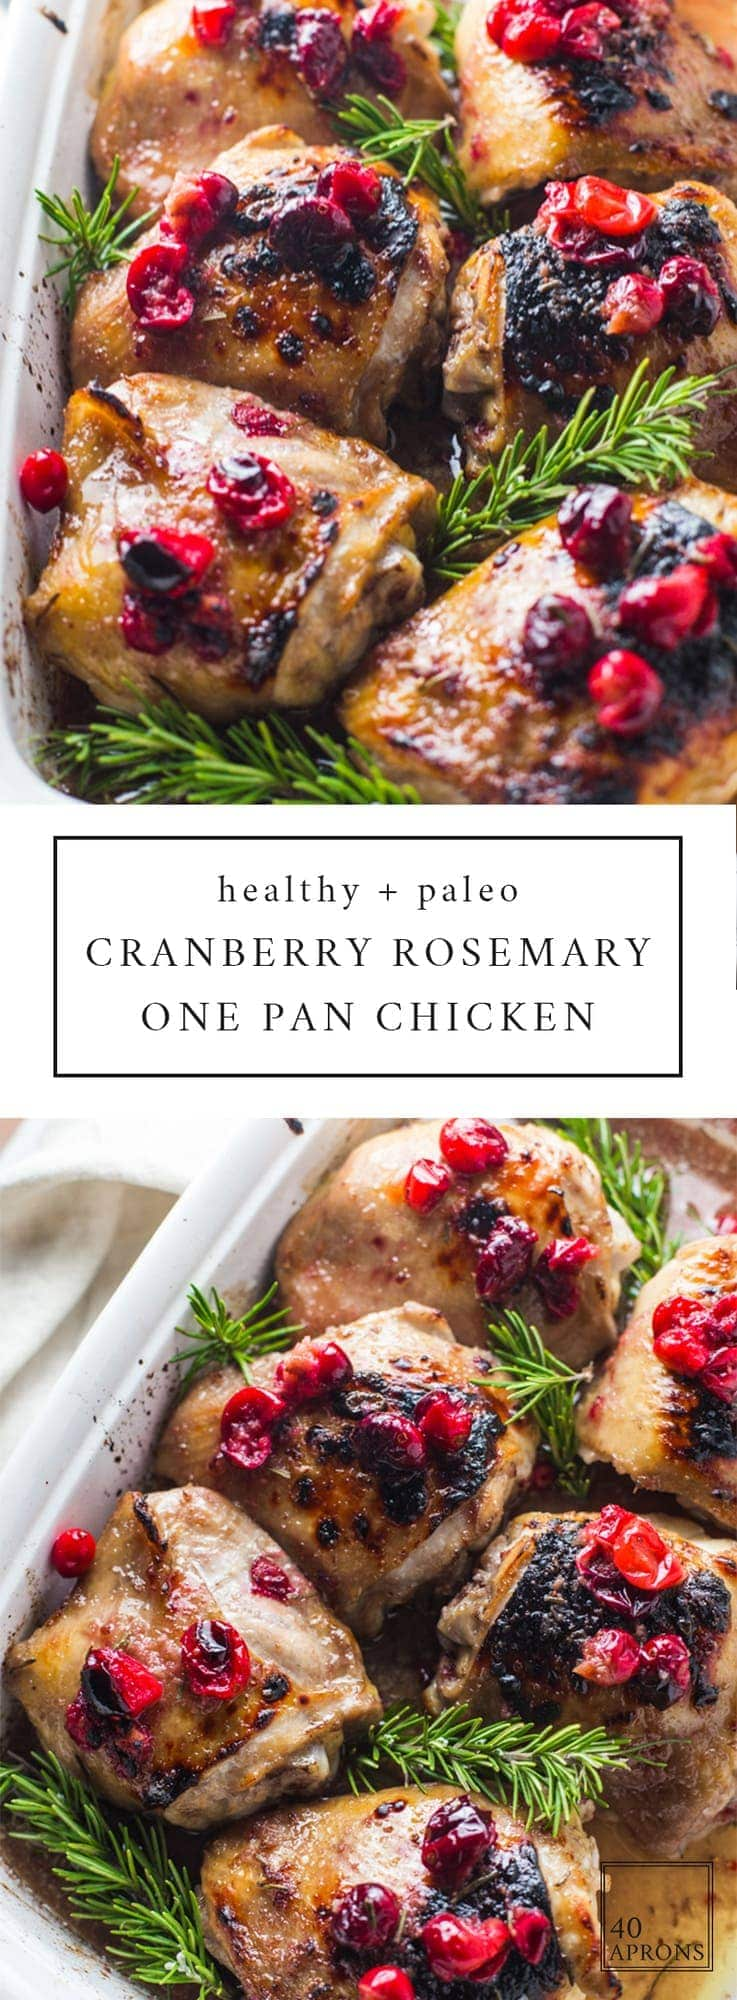 Cranberry rosemary one pan chicken 40 aprons this cranberry rosemary one pan chicken is an easy healthy dinner youre forumfinder Images